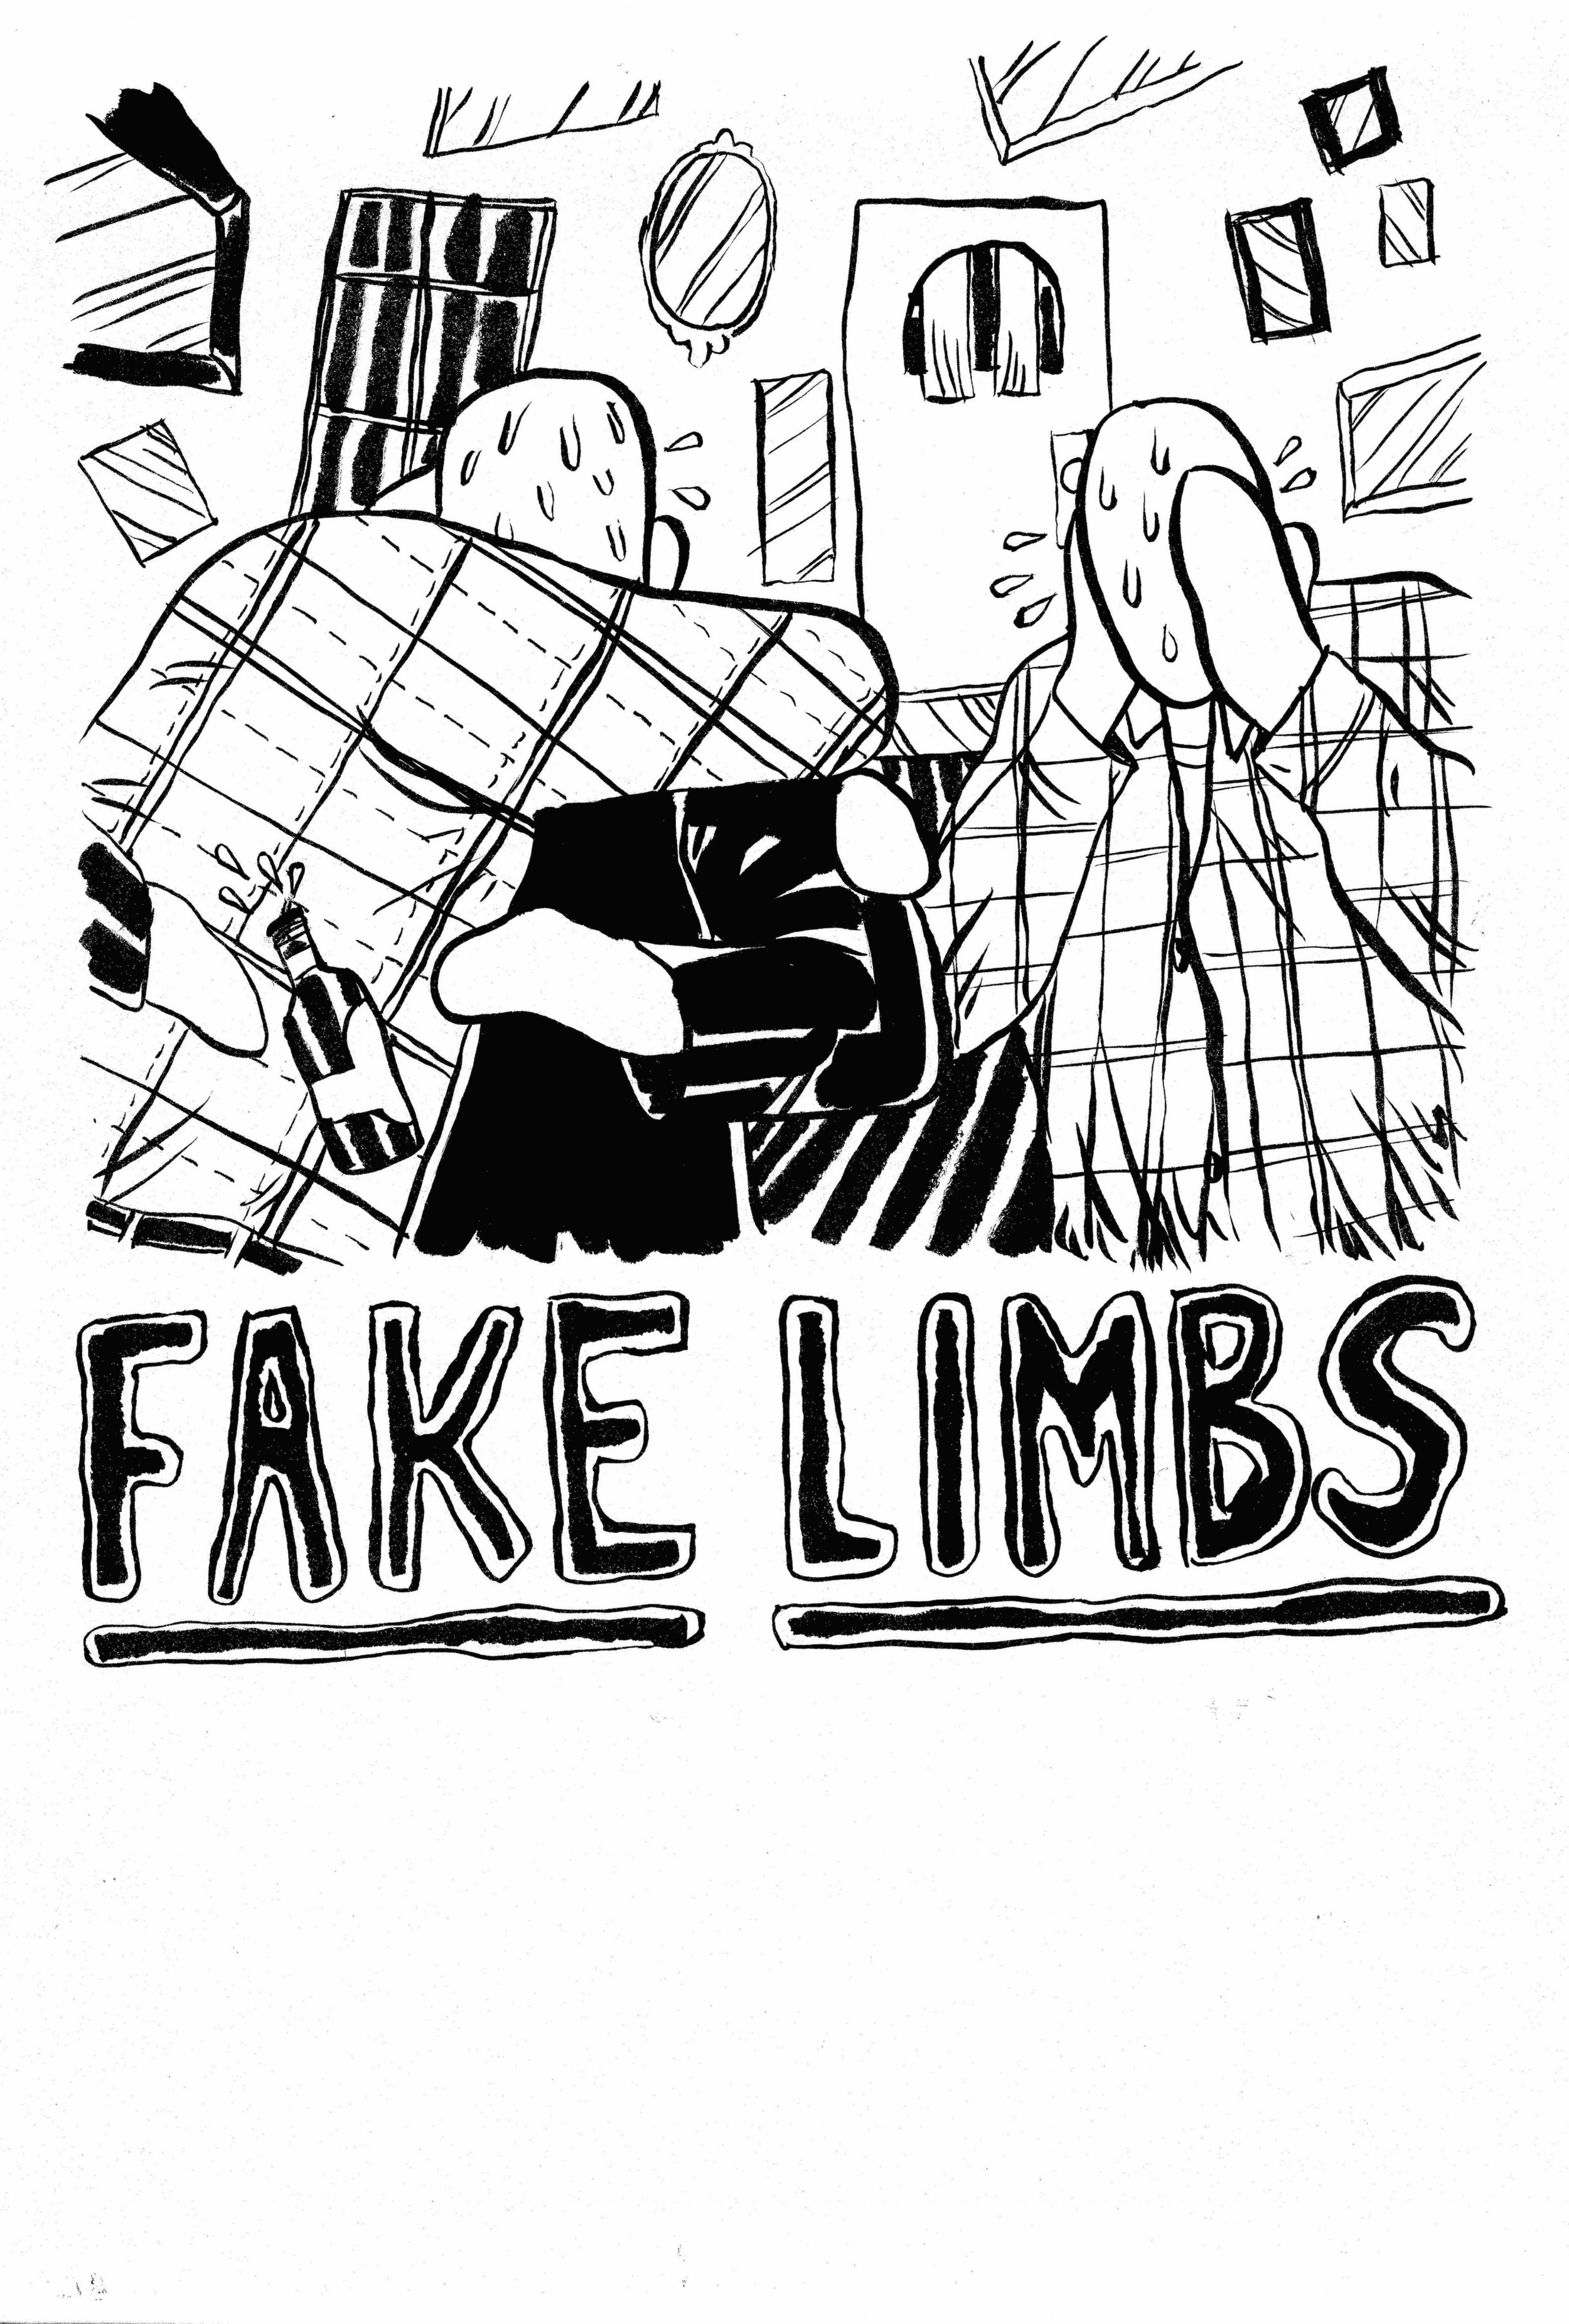 Fake Limbs Tour Poster - Ink on Paper 9x12